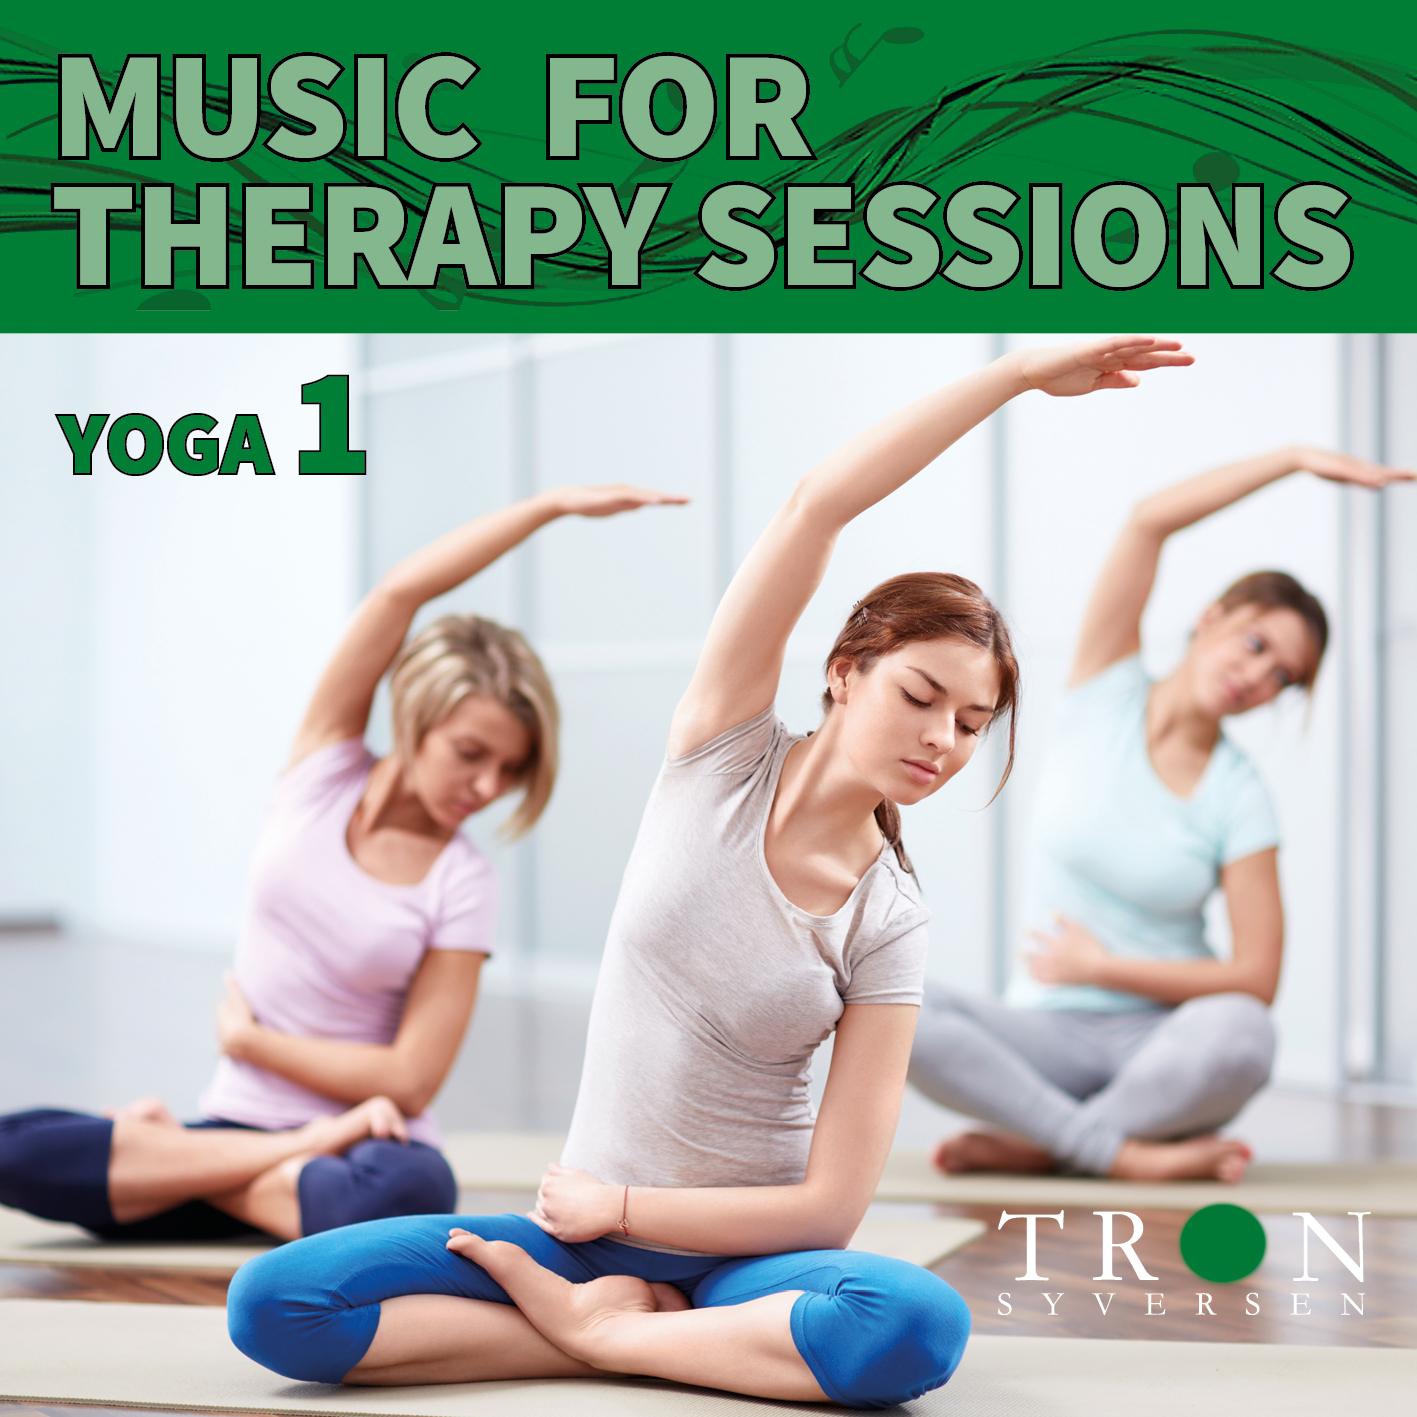 MUSIC FOR THERAPY SESSIONS YOGA VOL 1 - DIGITAL DOWNLOAD